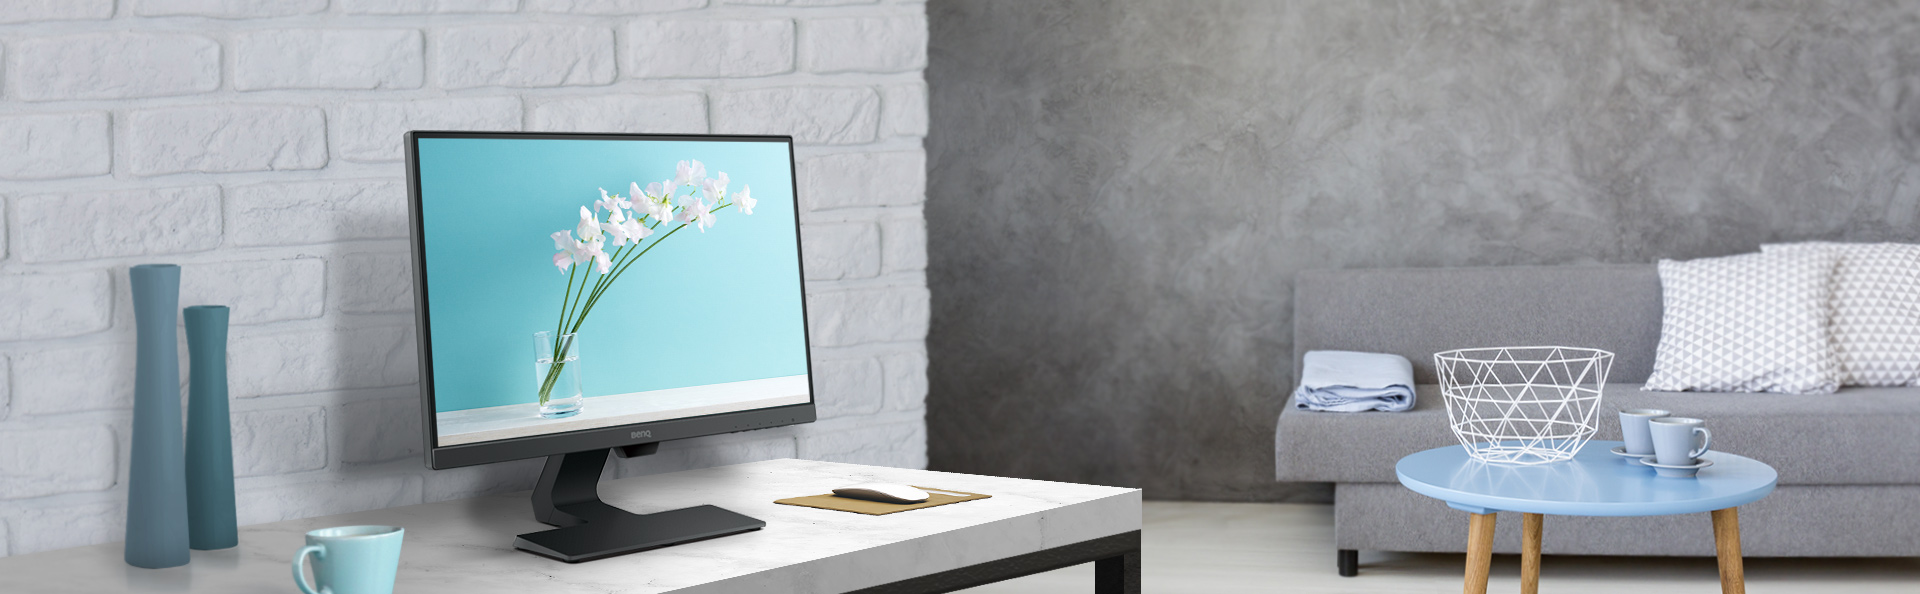 GW2480 Stylish Monitor with Eye-care Technology   BenQ Asia Pacific